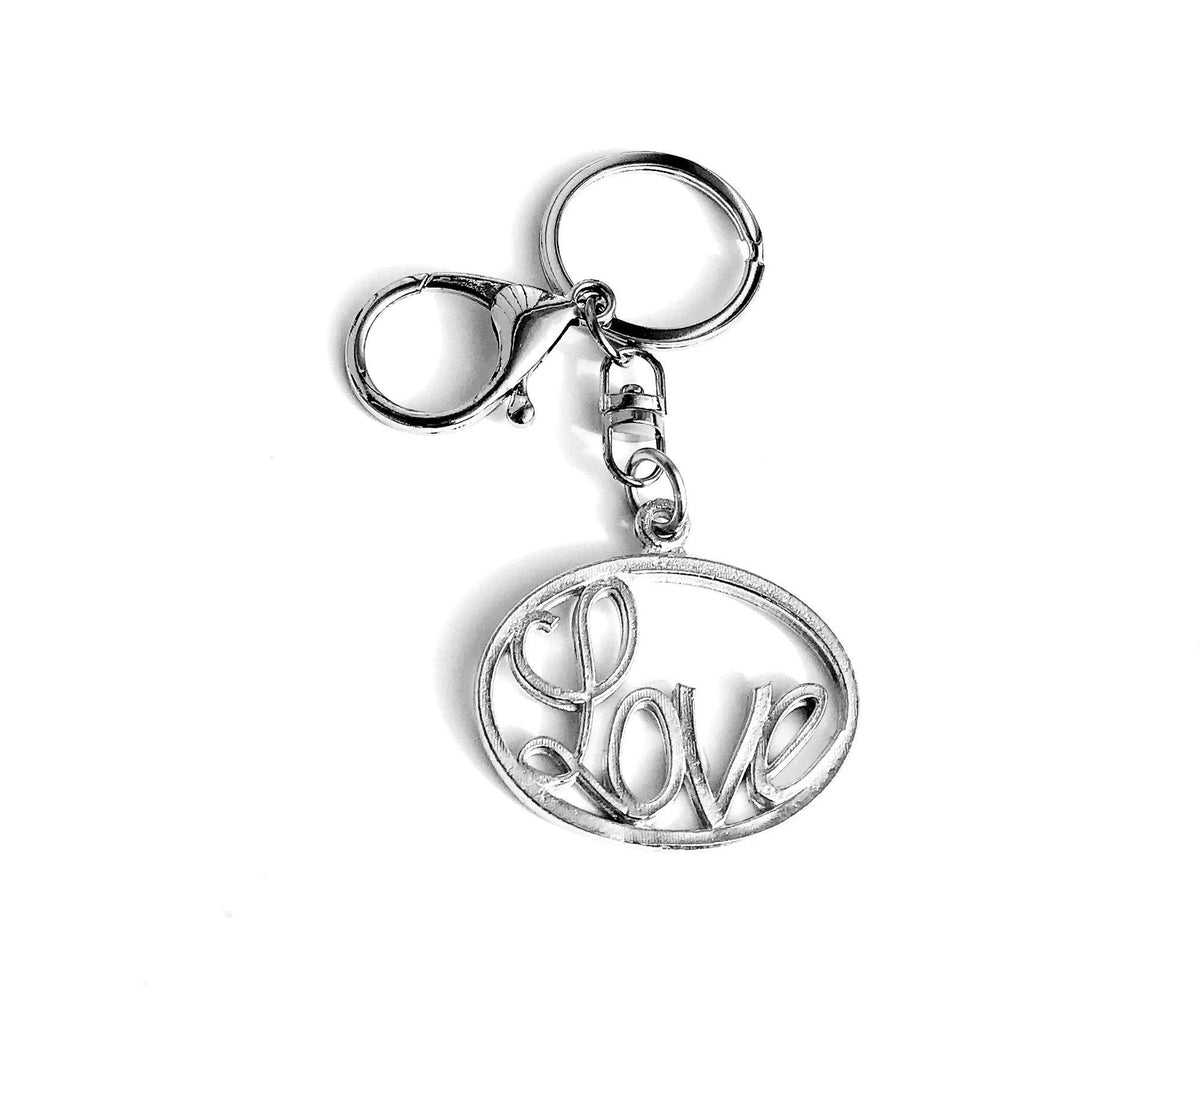 Handmade Pewter Love Keychain, Special Message Purse Charm, Valentine's Day Gift